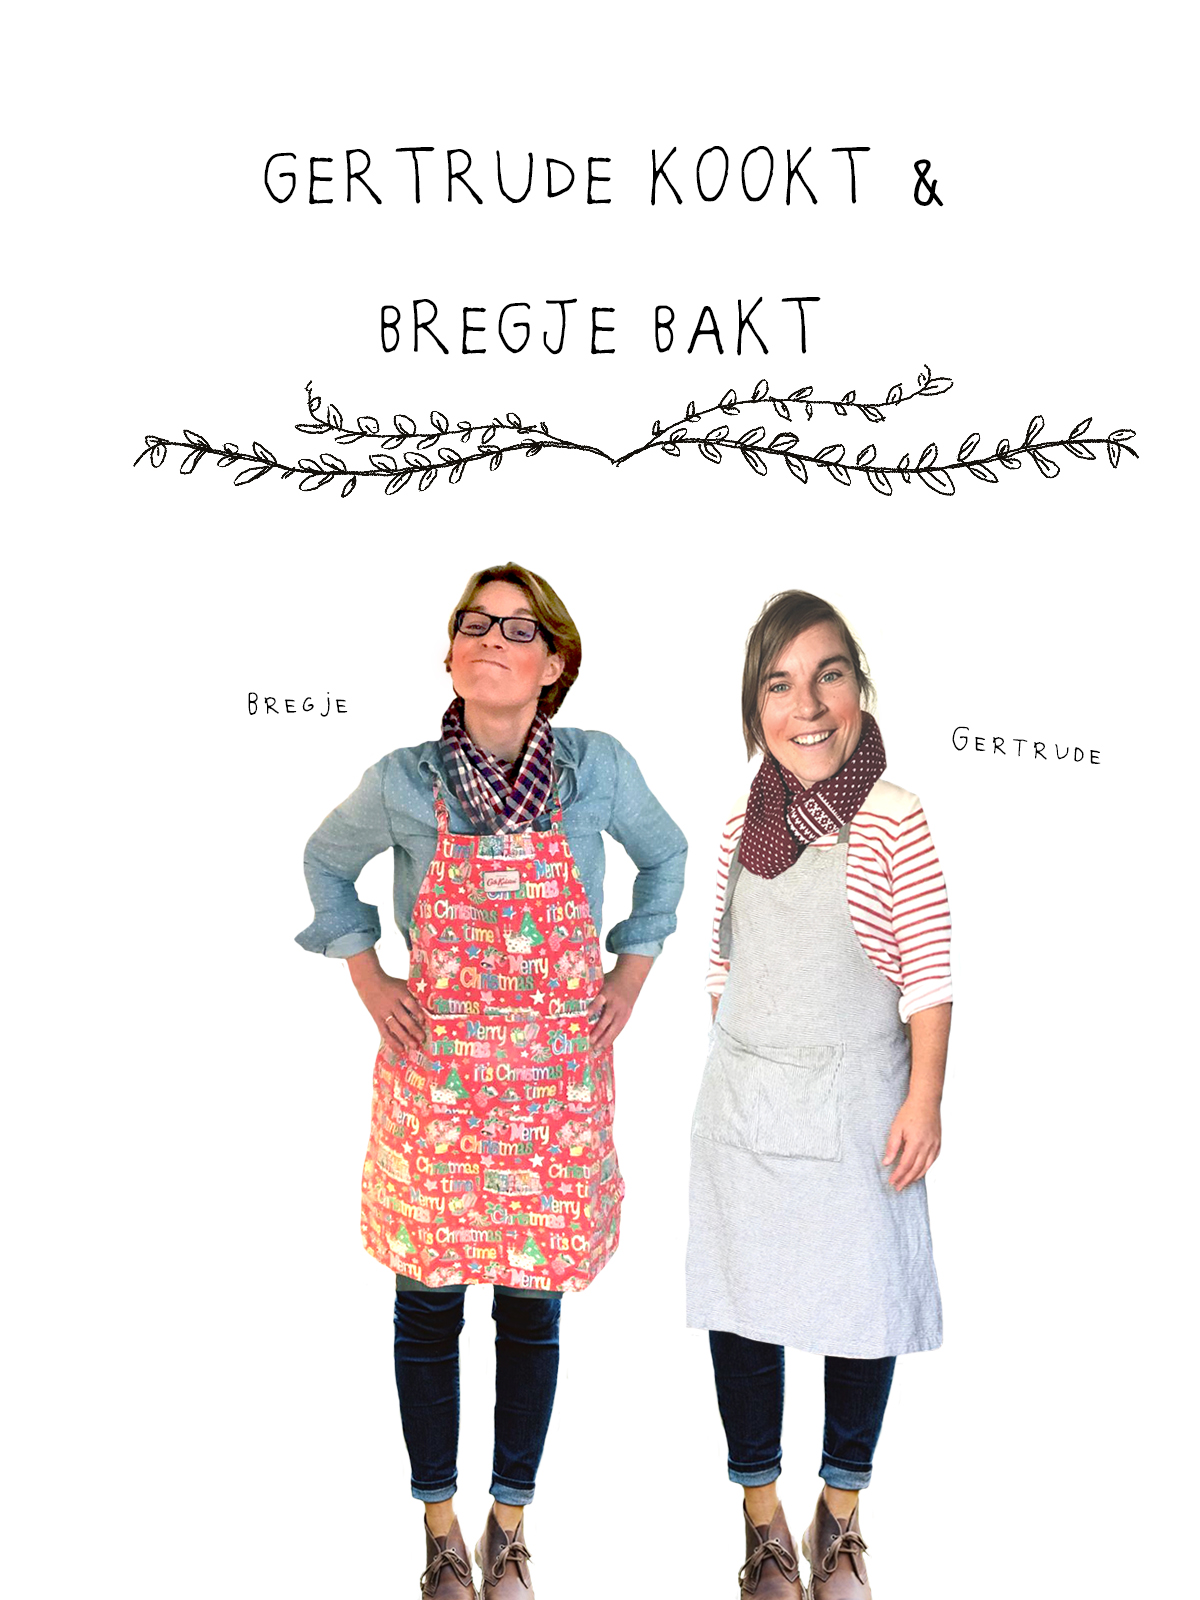 Gertrude kookt & Bregje bakt